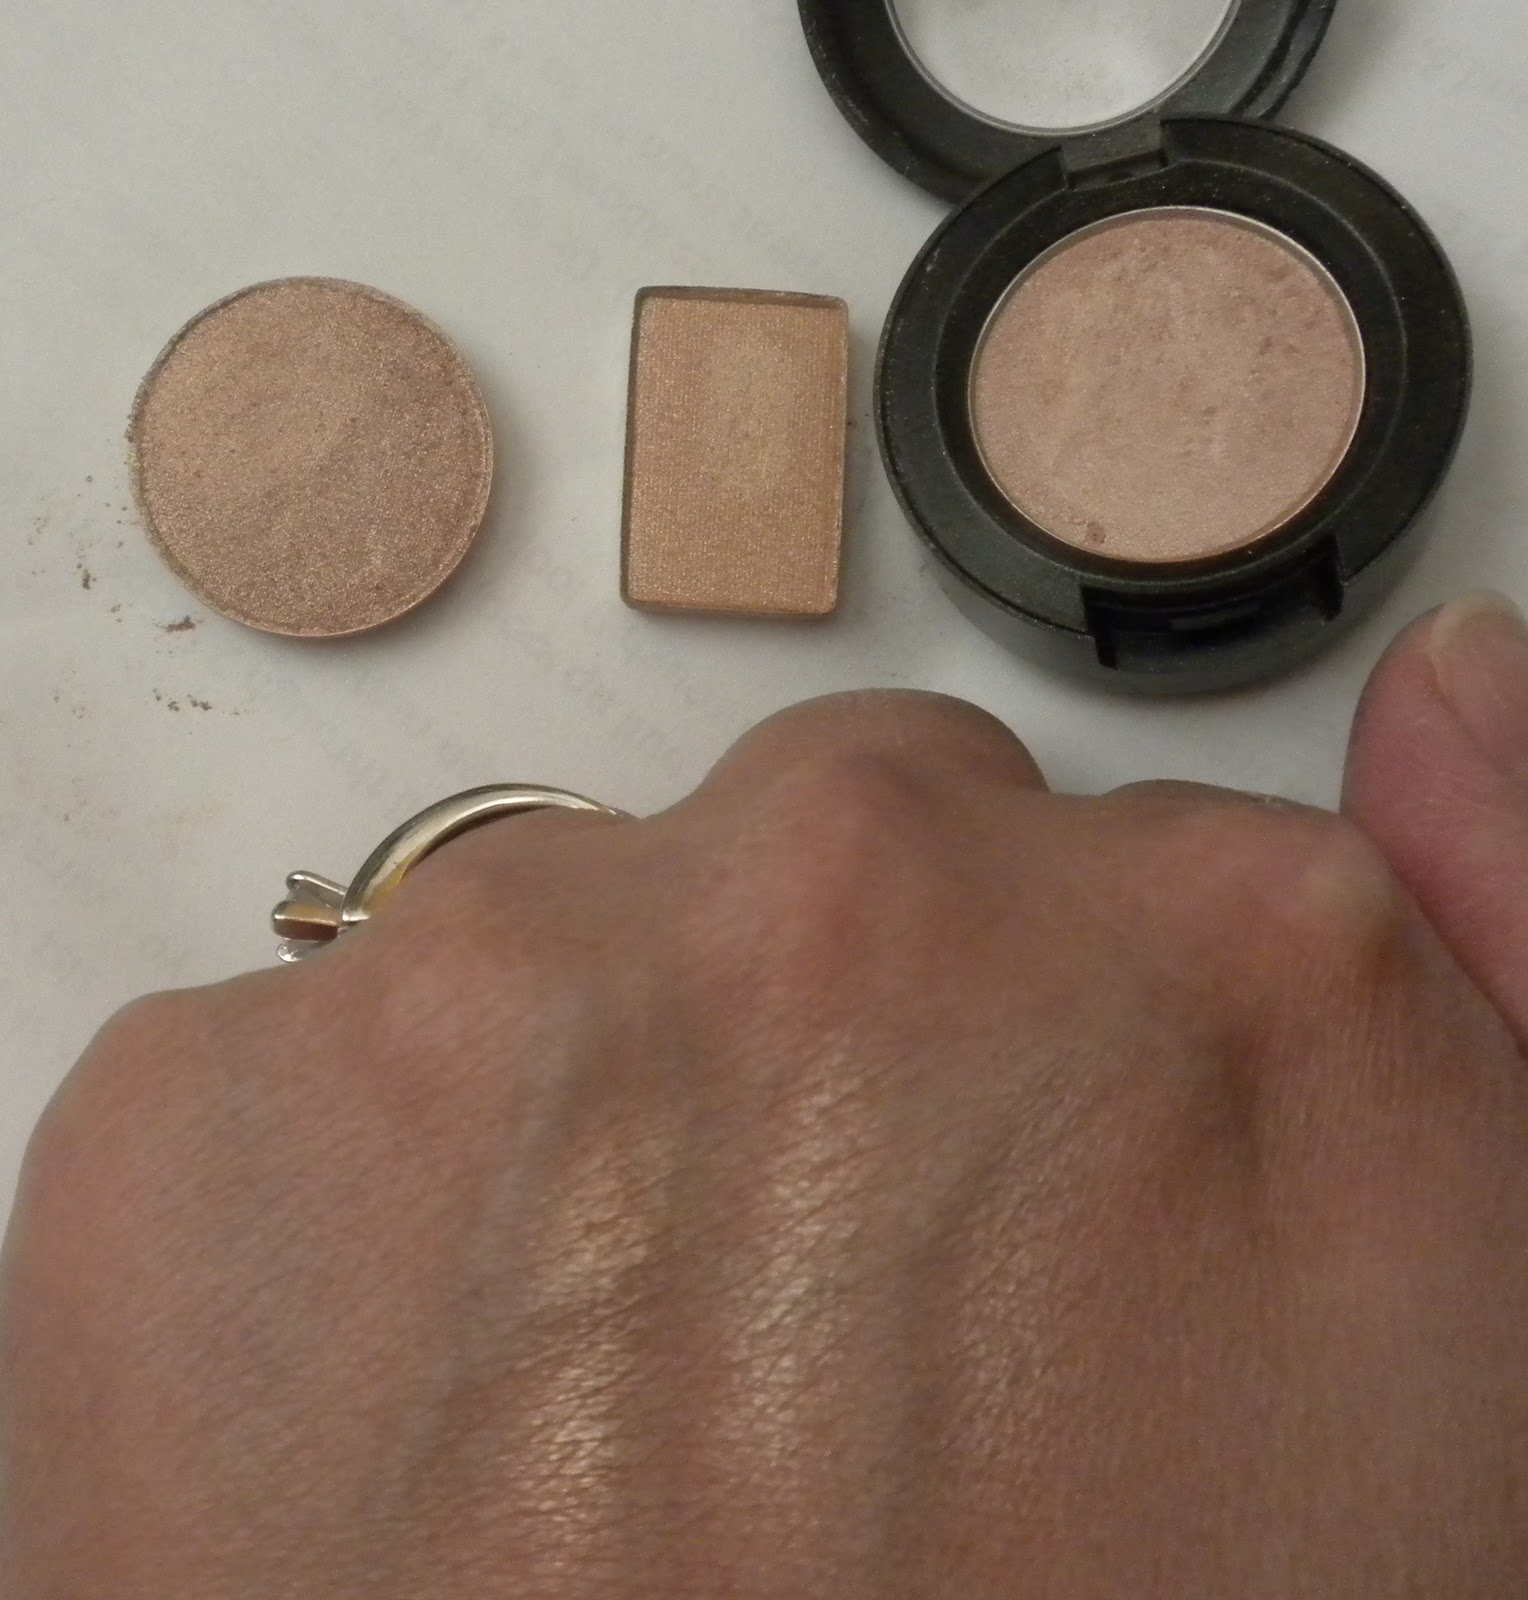 Mac All That Glitters Vs Stila Kitten